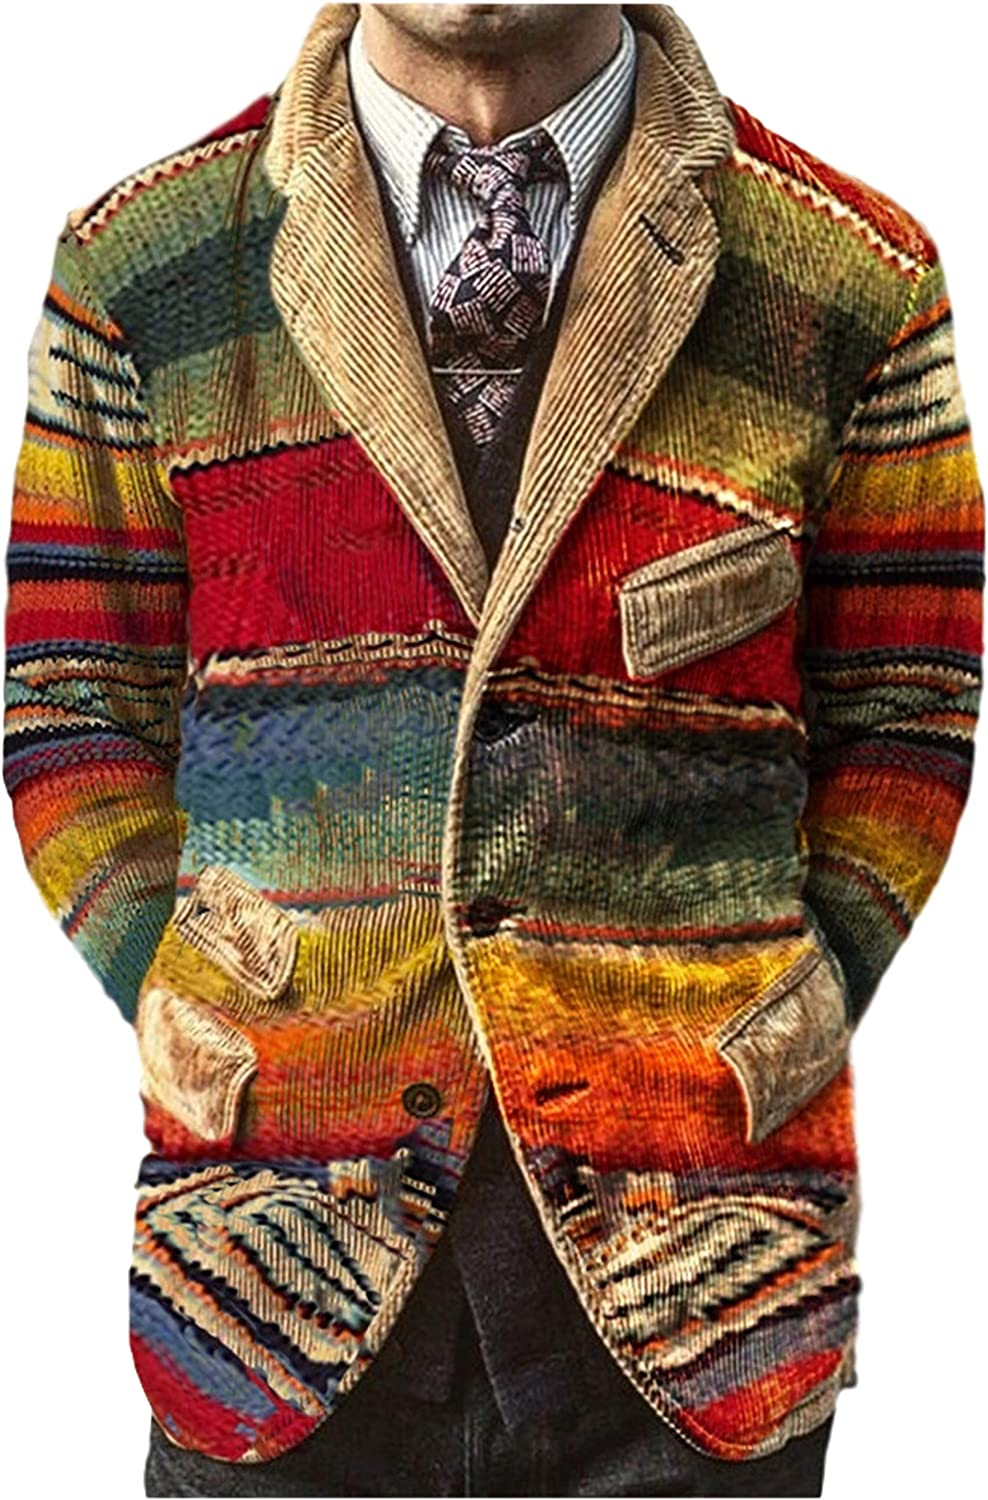 Uaneo Men's Corduroy Printed Casual Notched Lapel Long Sleeve Blazer Suit Jacket(Multicolored-XS)